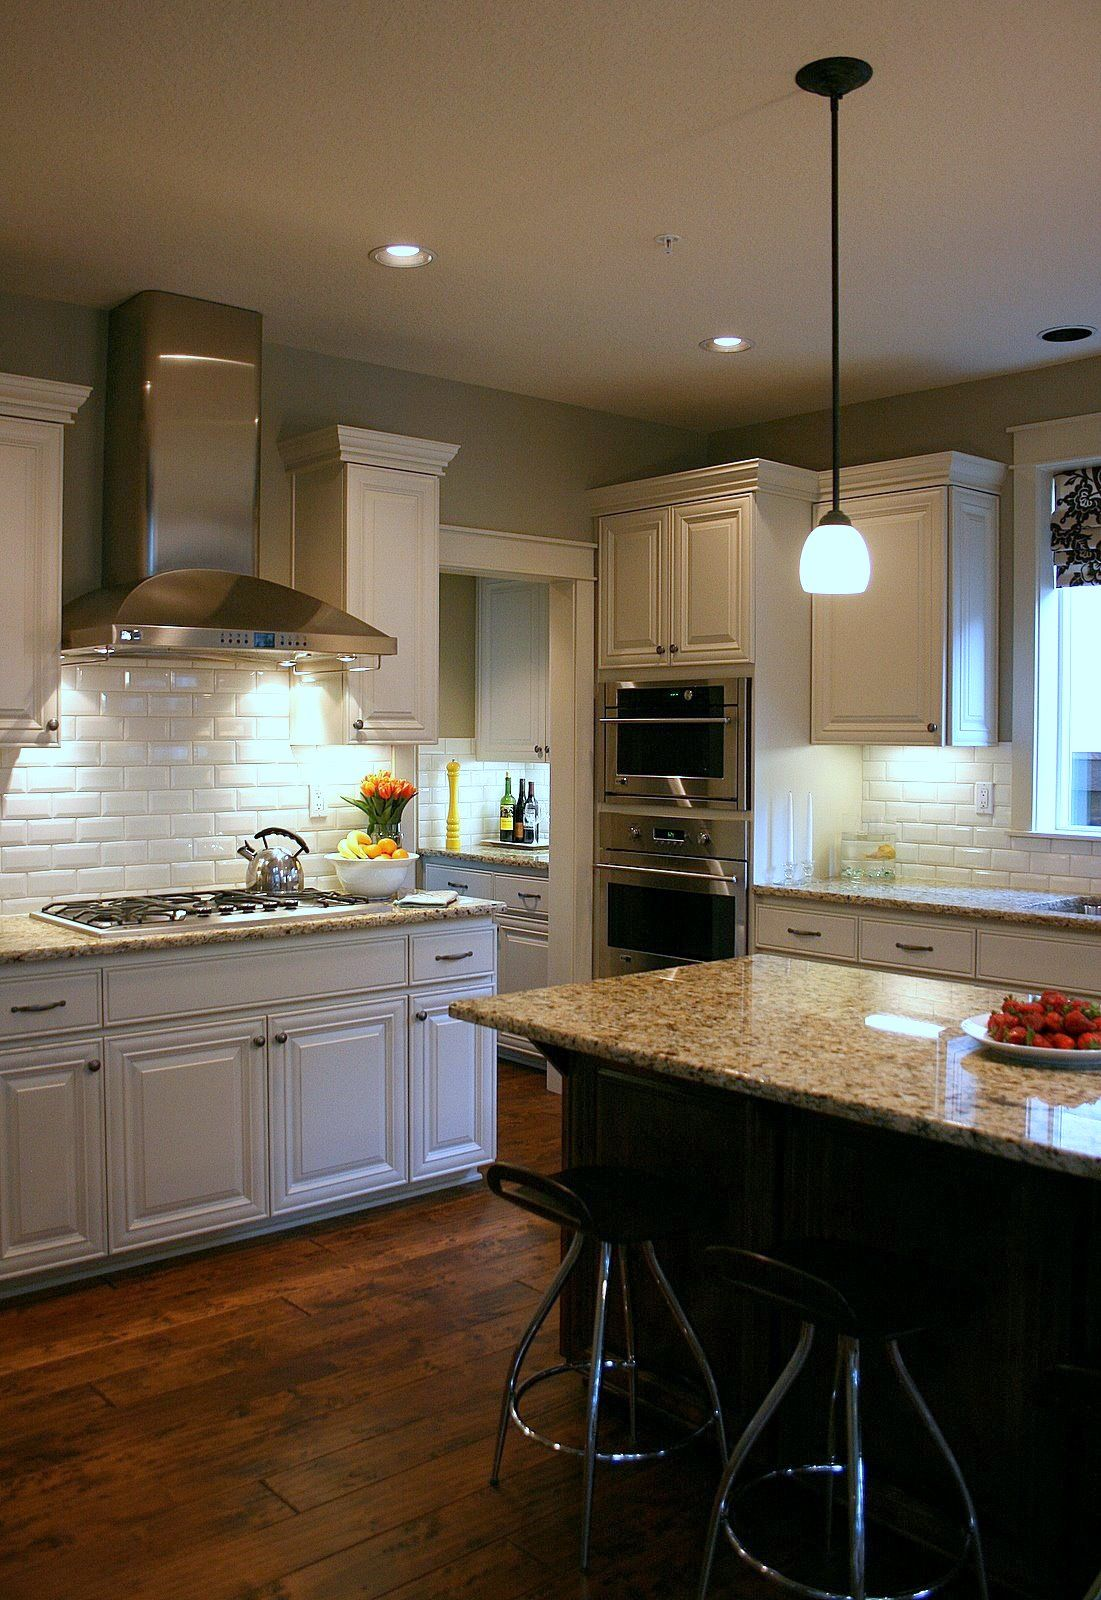 Paint Color Sherwin Williams Quot Universal Khaki Quot Kitchen